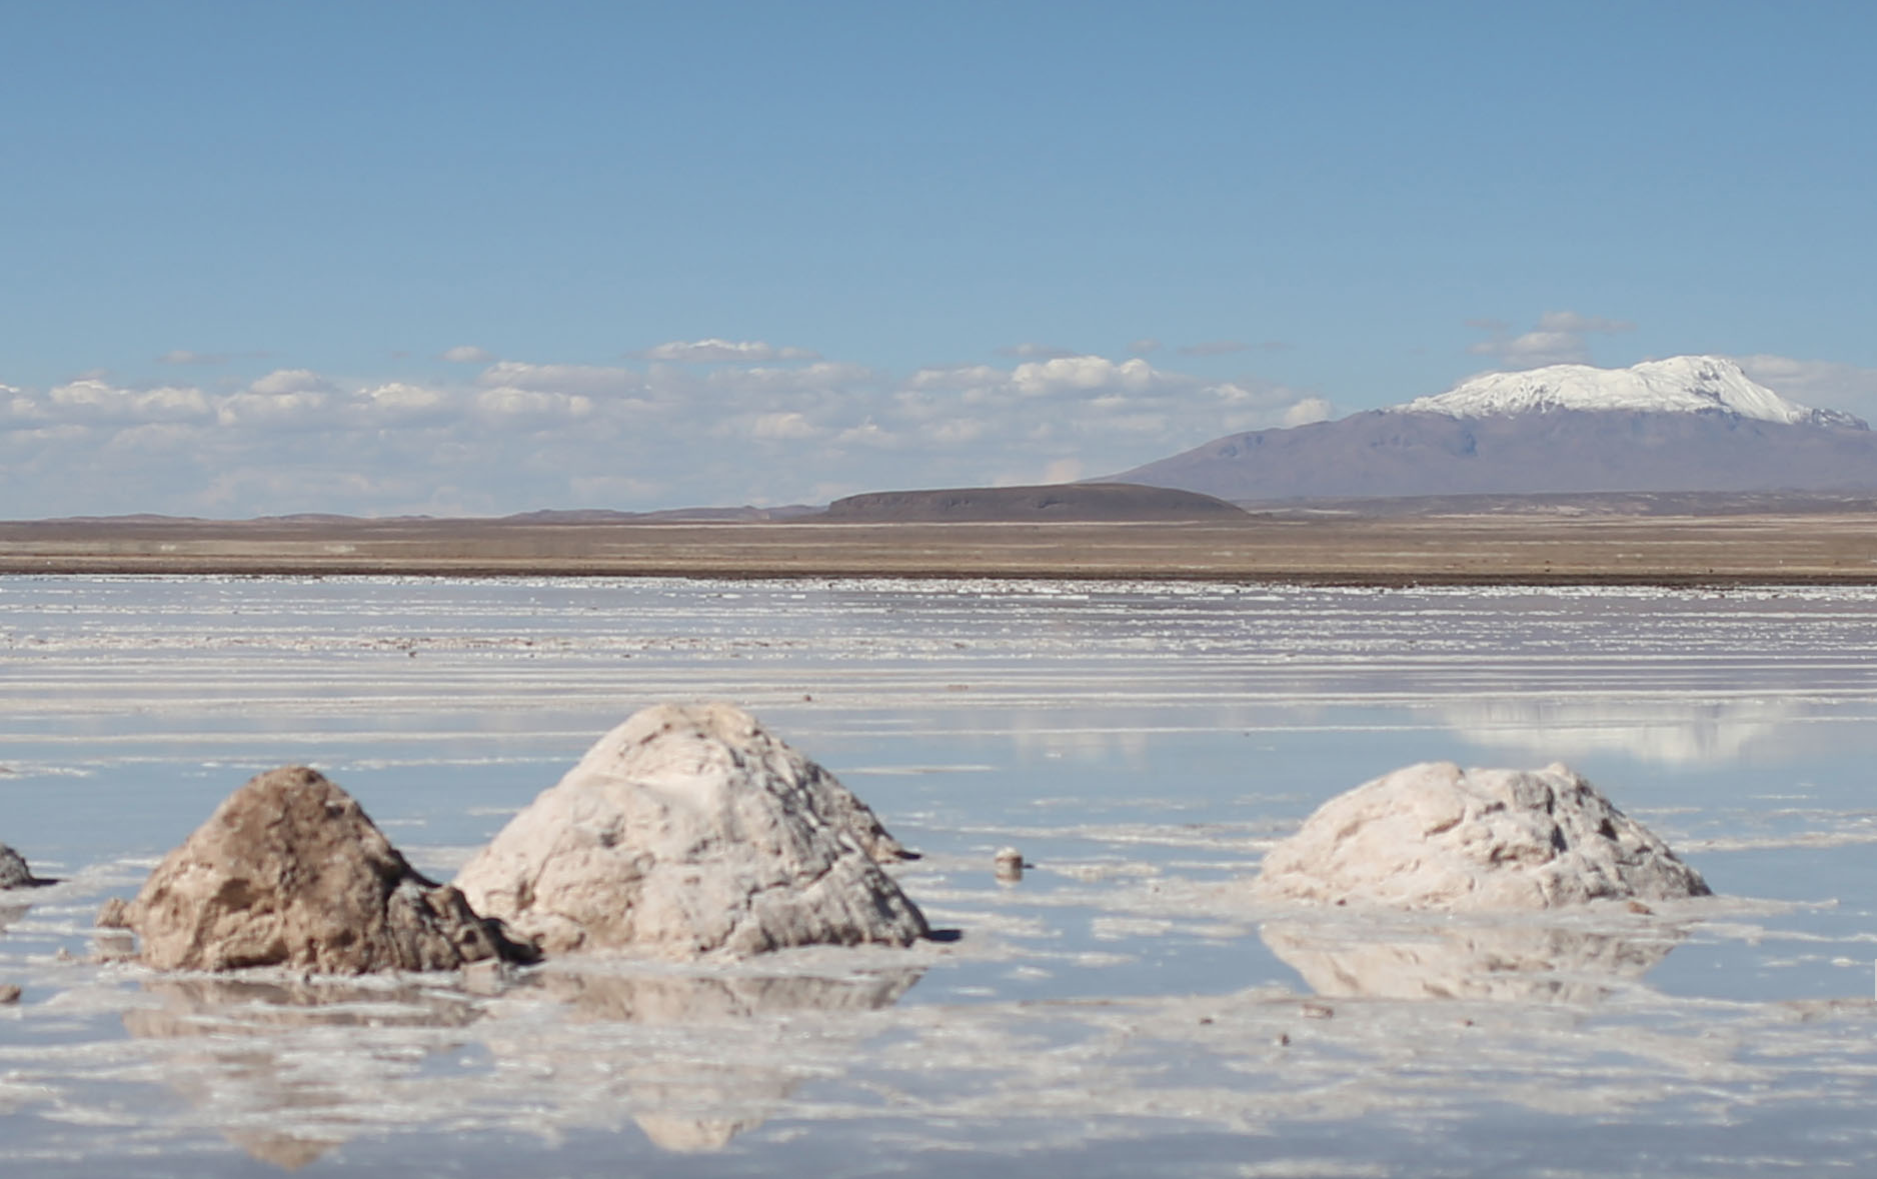 Bolivia's new constitution guarantees that the nation's natural resources belong to the Bolivian people. Citizens hope that lithium mining will boost the historically impoverished nation's economy.